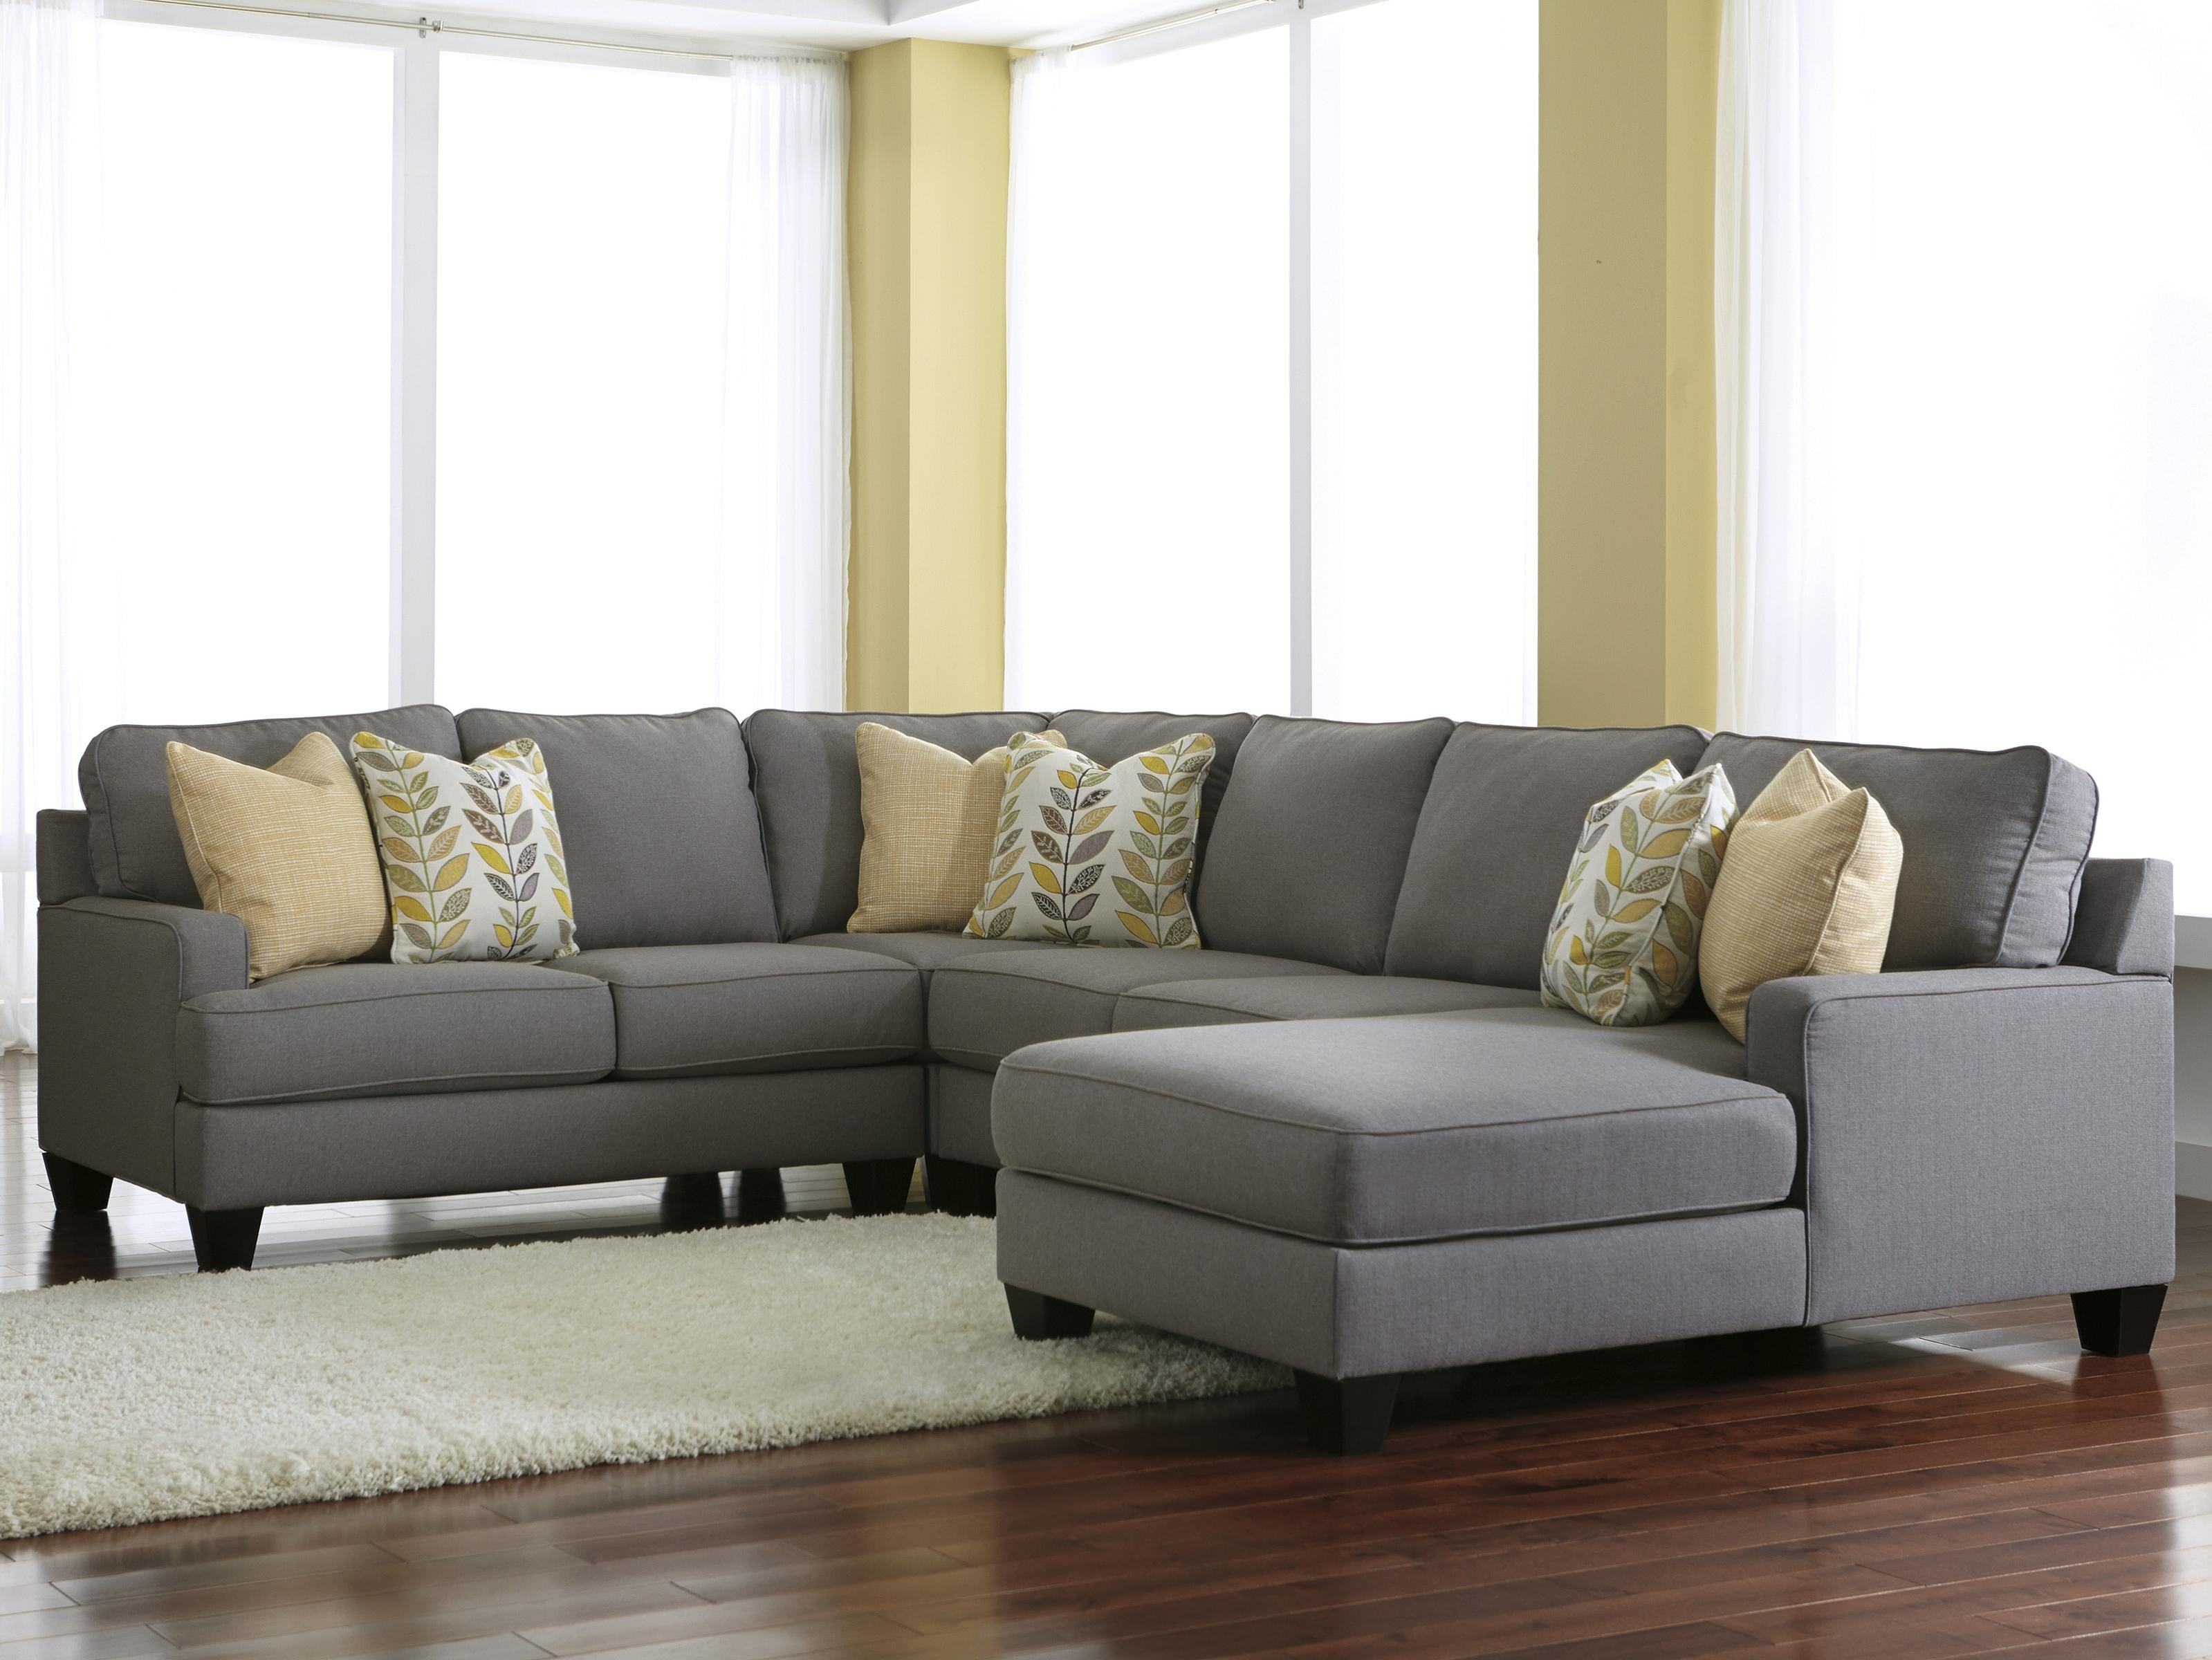 burgis design chamberly alloy modern 4 piece sectional sofa with rh bennetts ca